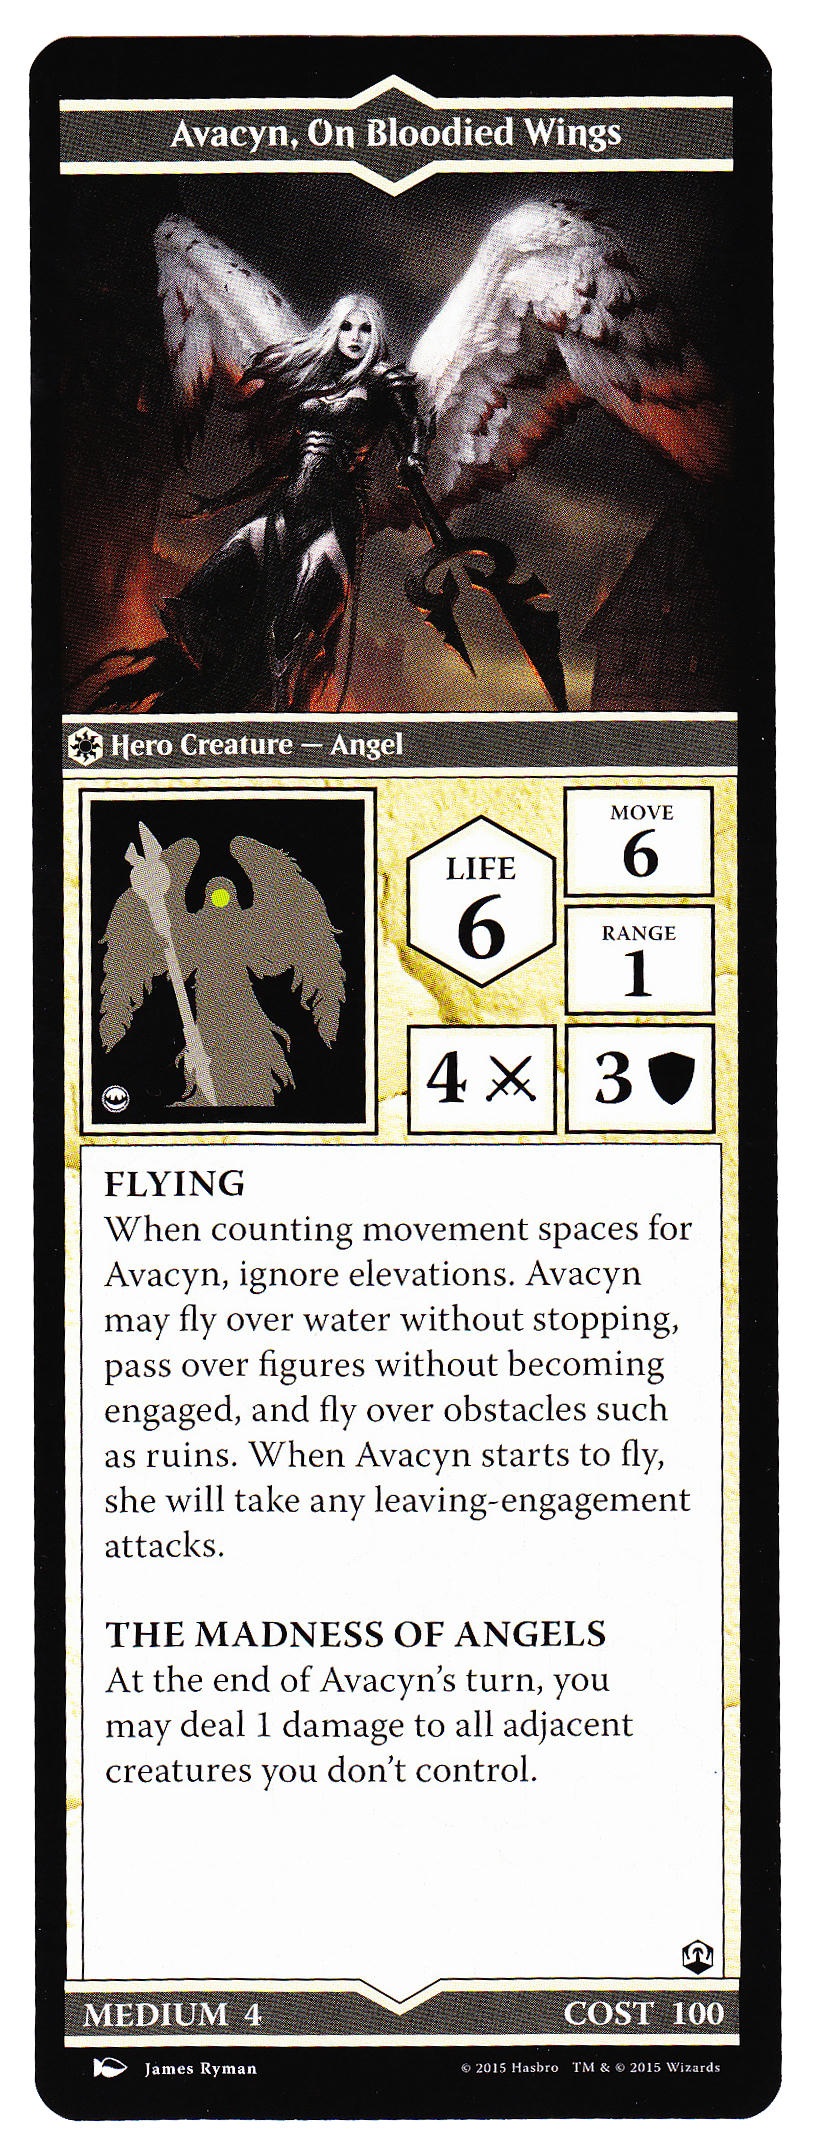 The Book of Avacyn, On Bloodied Wings - Heroscapers Planeswalker Arena Custom